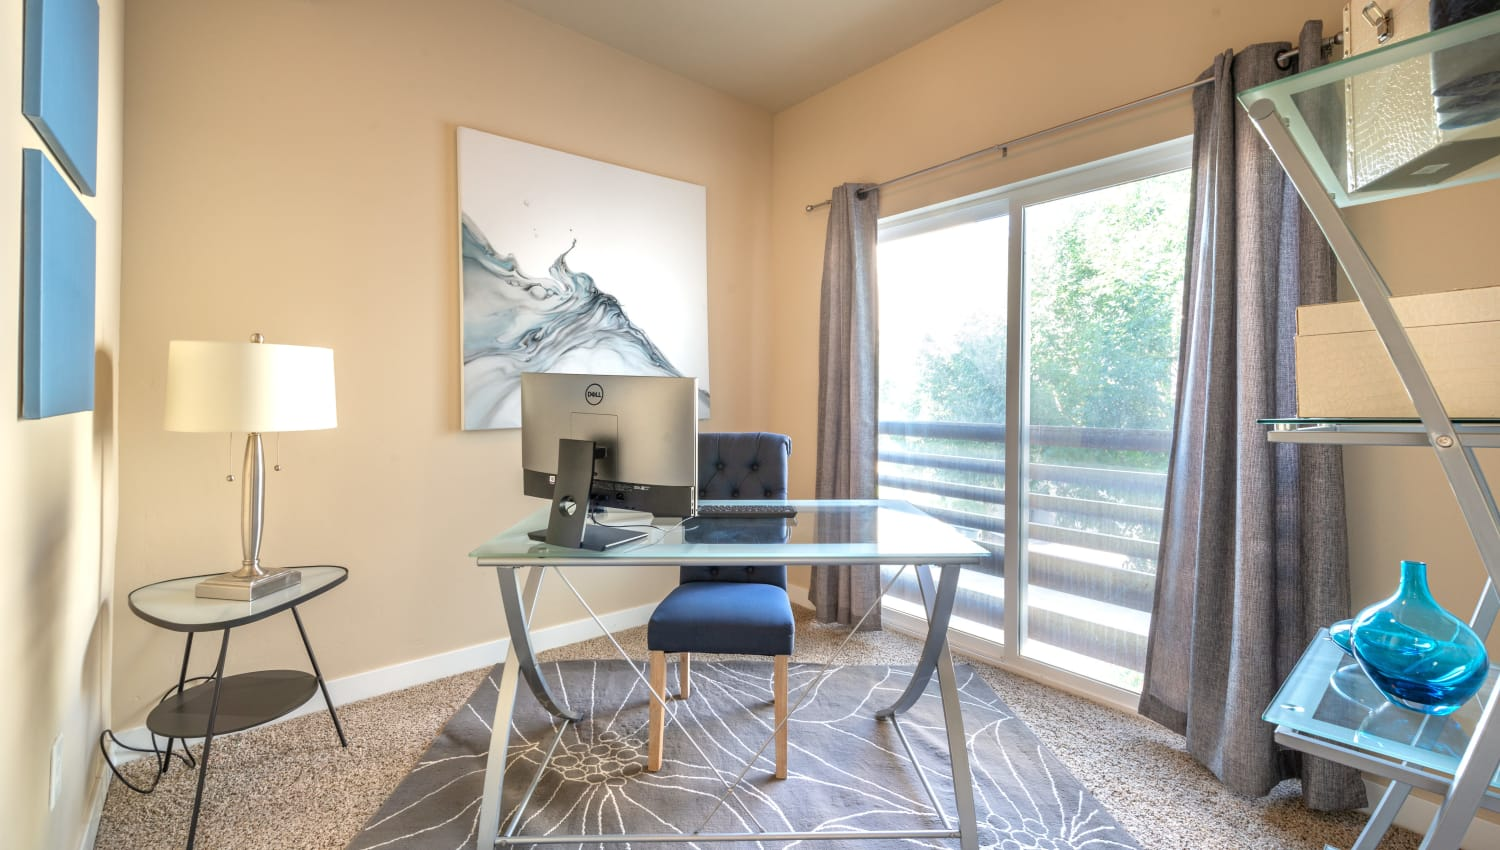 Room at Olympus at the District in South Jordan, Utah with sliding glass doors to balcony